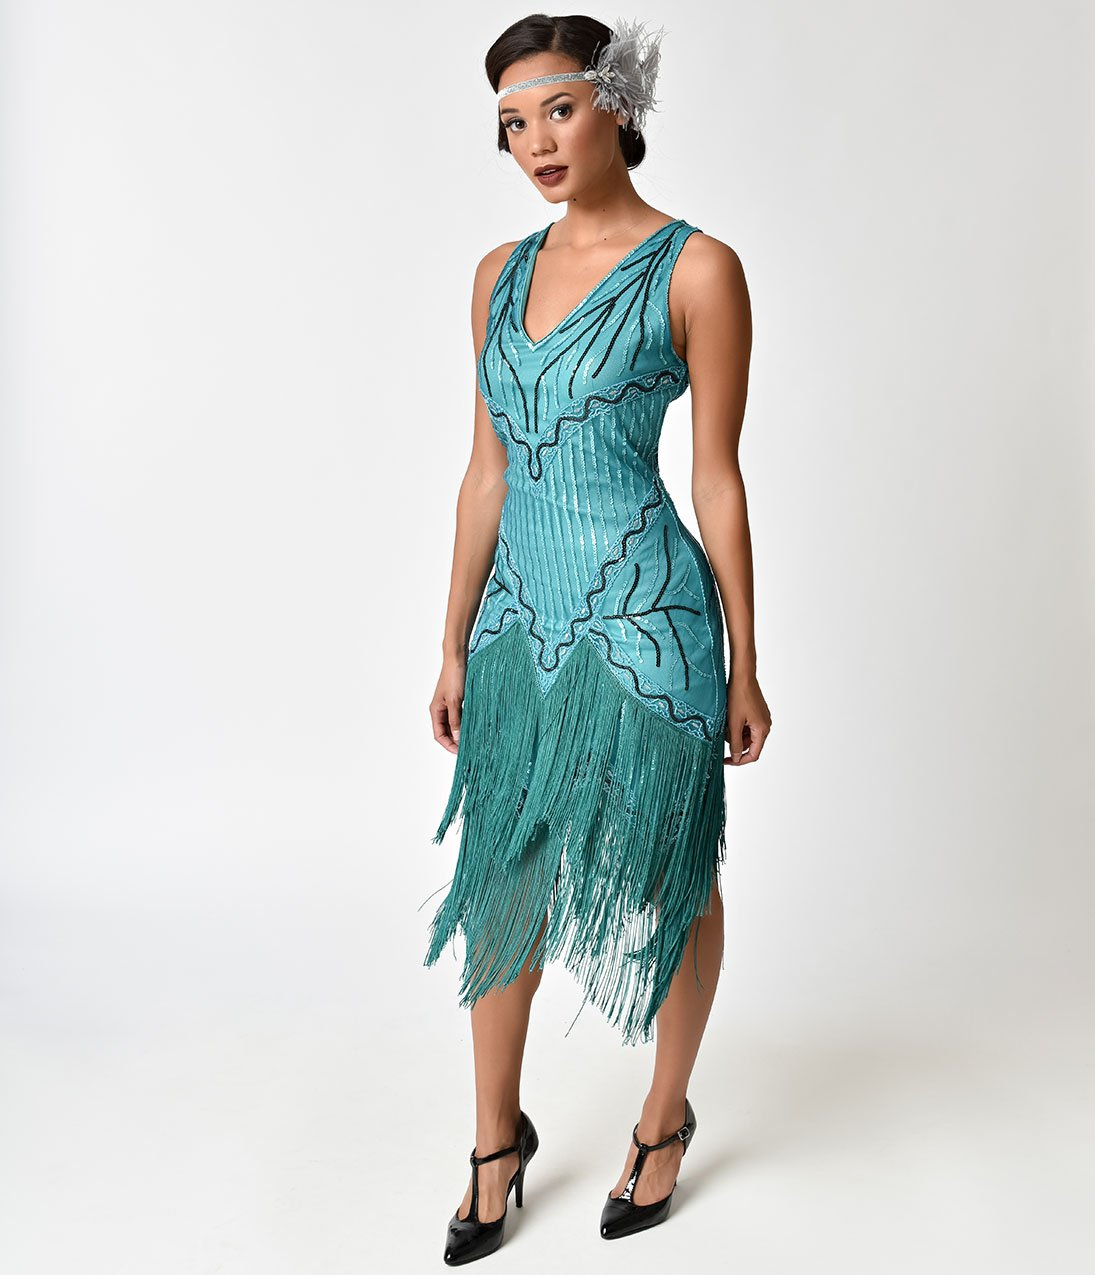 1de6bb70e7 1920s Style Costumes, Flapper Dresses, Gangster Costumes in 2019 ...